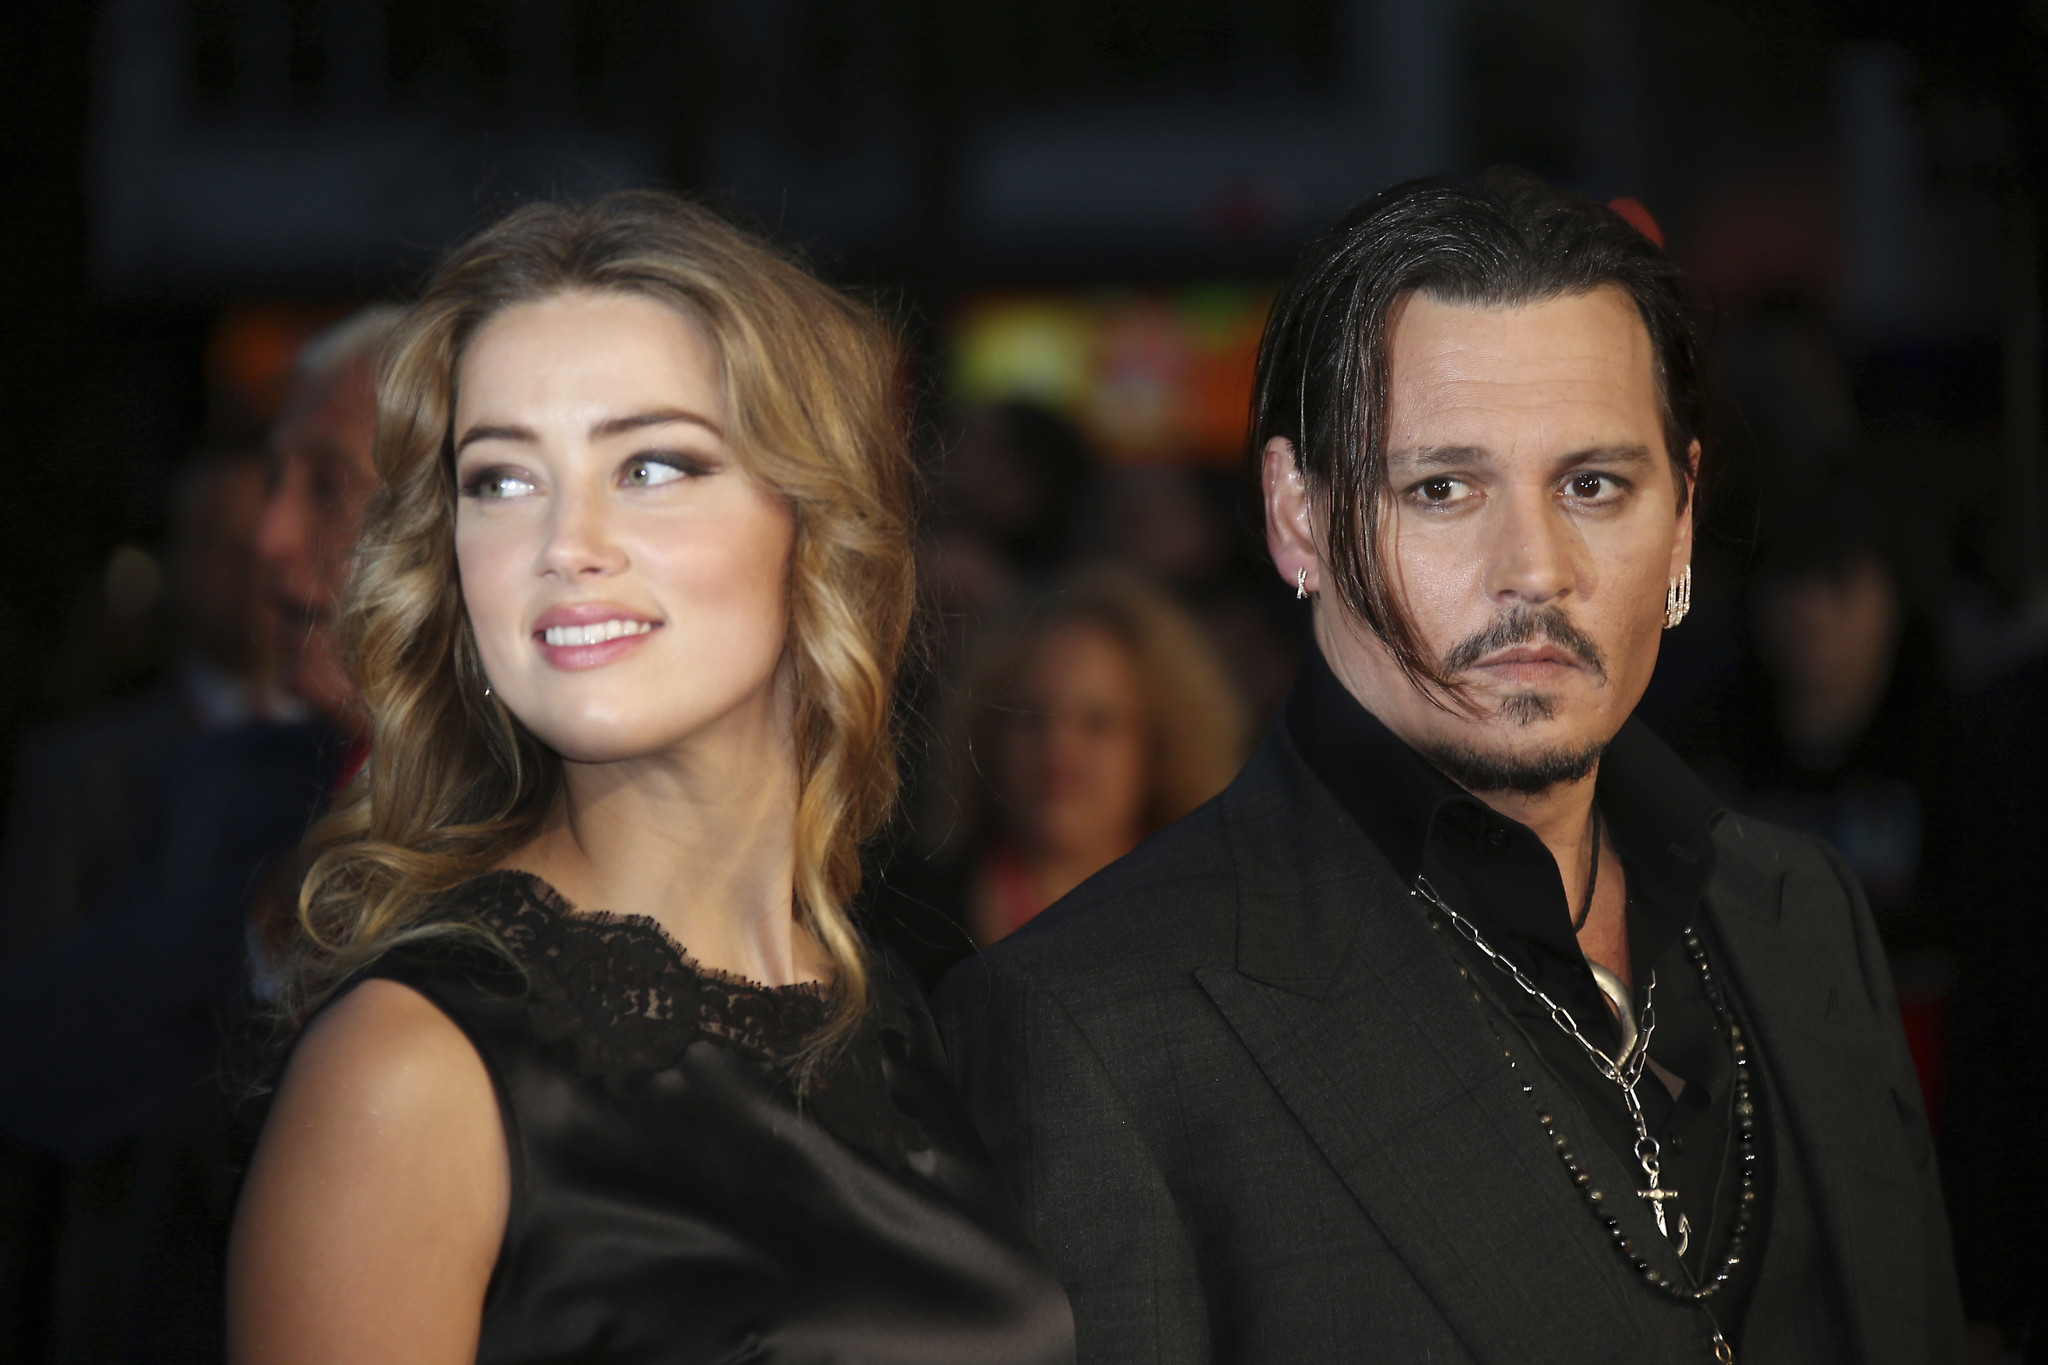 Johnny Depp can proceed with defamation lawsuit against ex-wife Amber Heard, judge rules